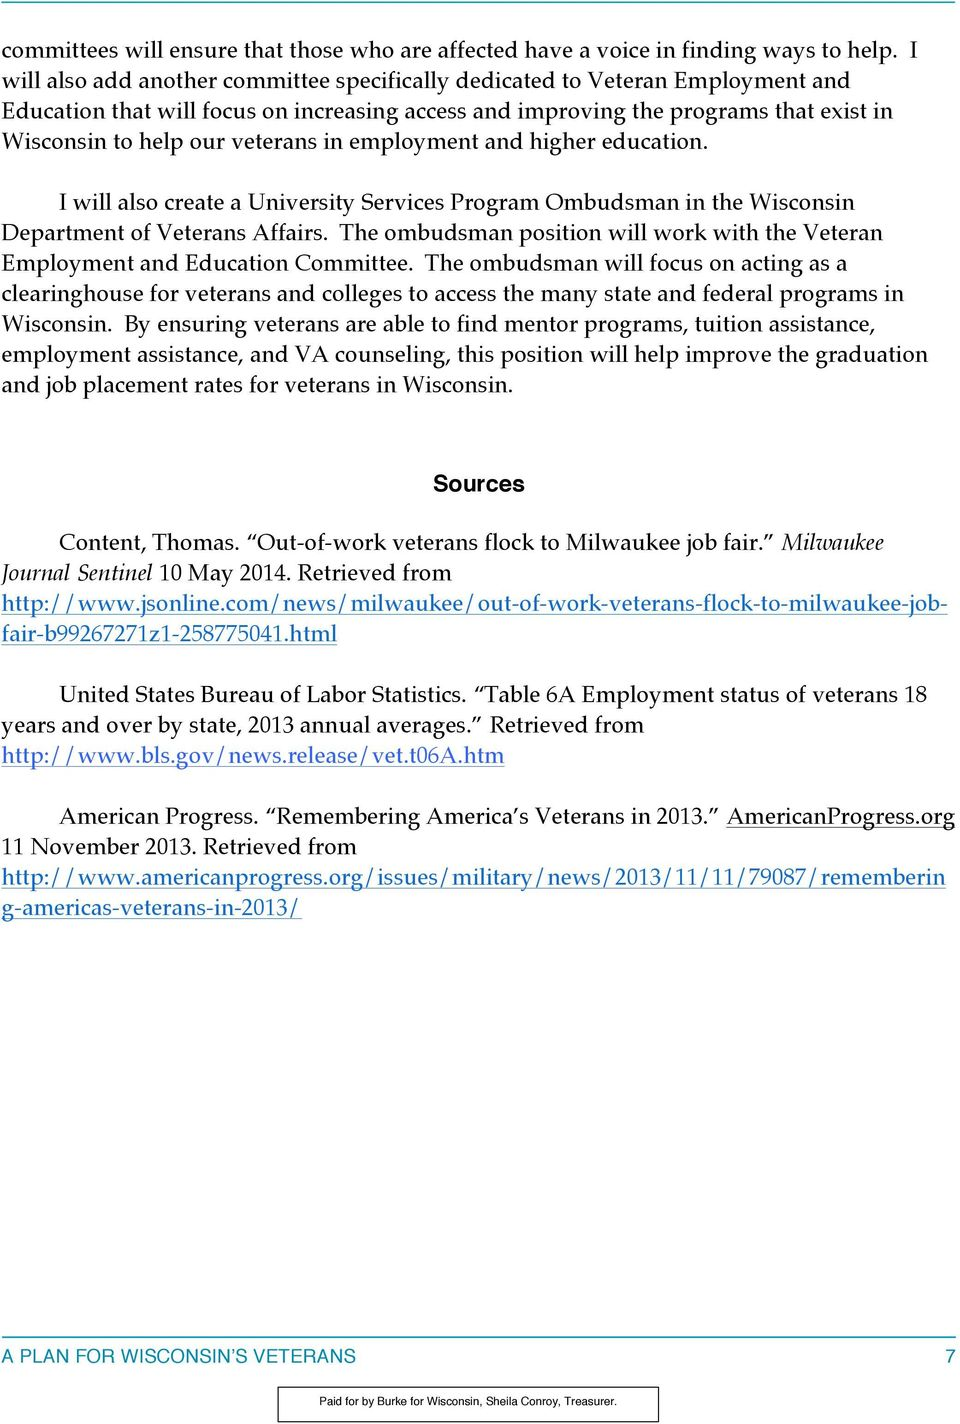 veterans in employment and higher education. I will also create a University Services Program Ombudsman in the Wisconsin Department of Veterans Affairs.